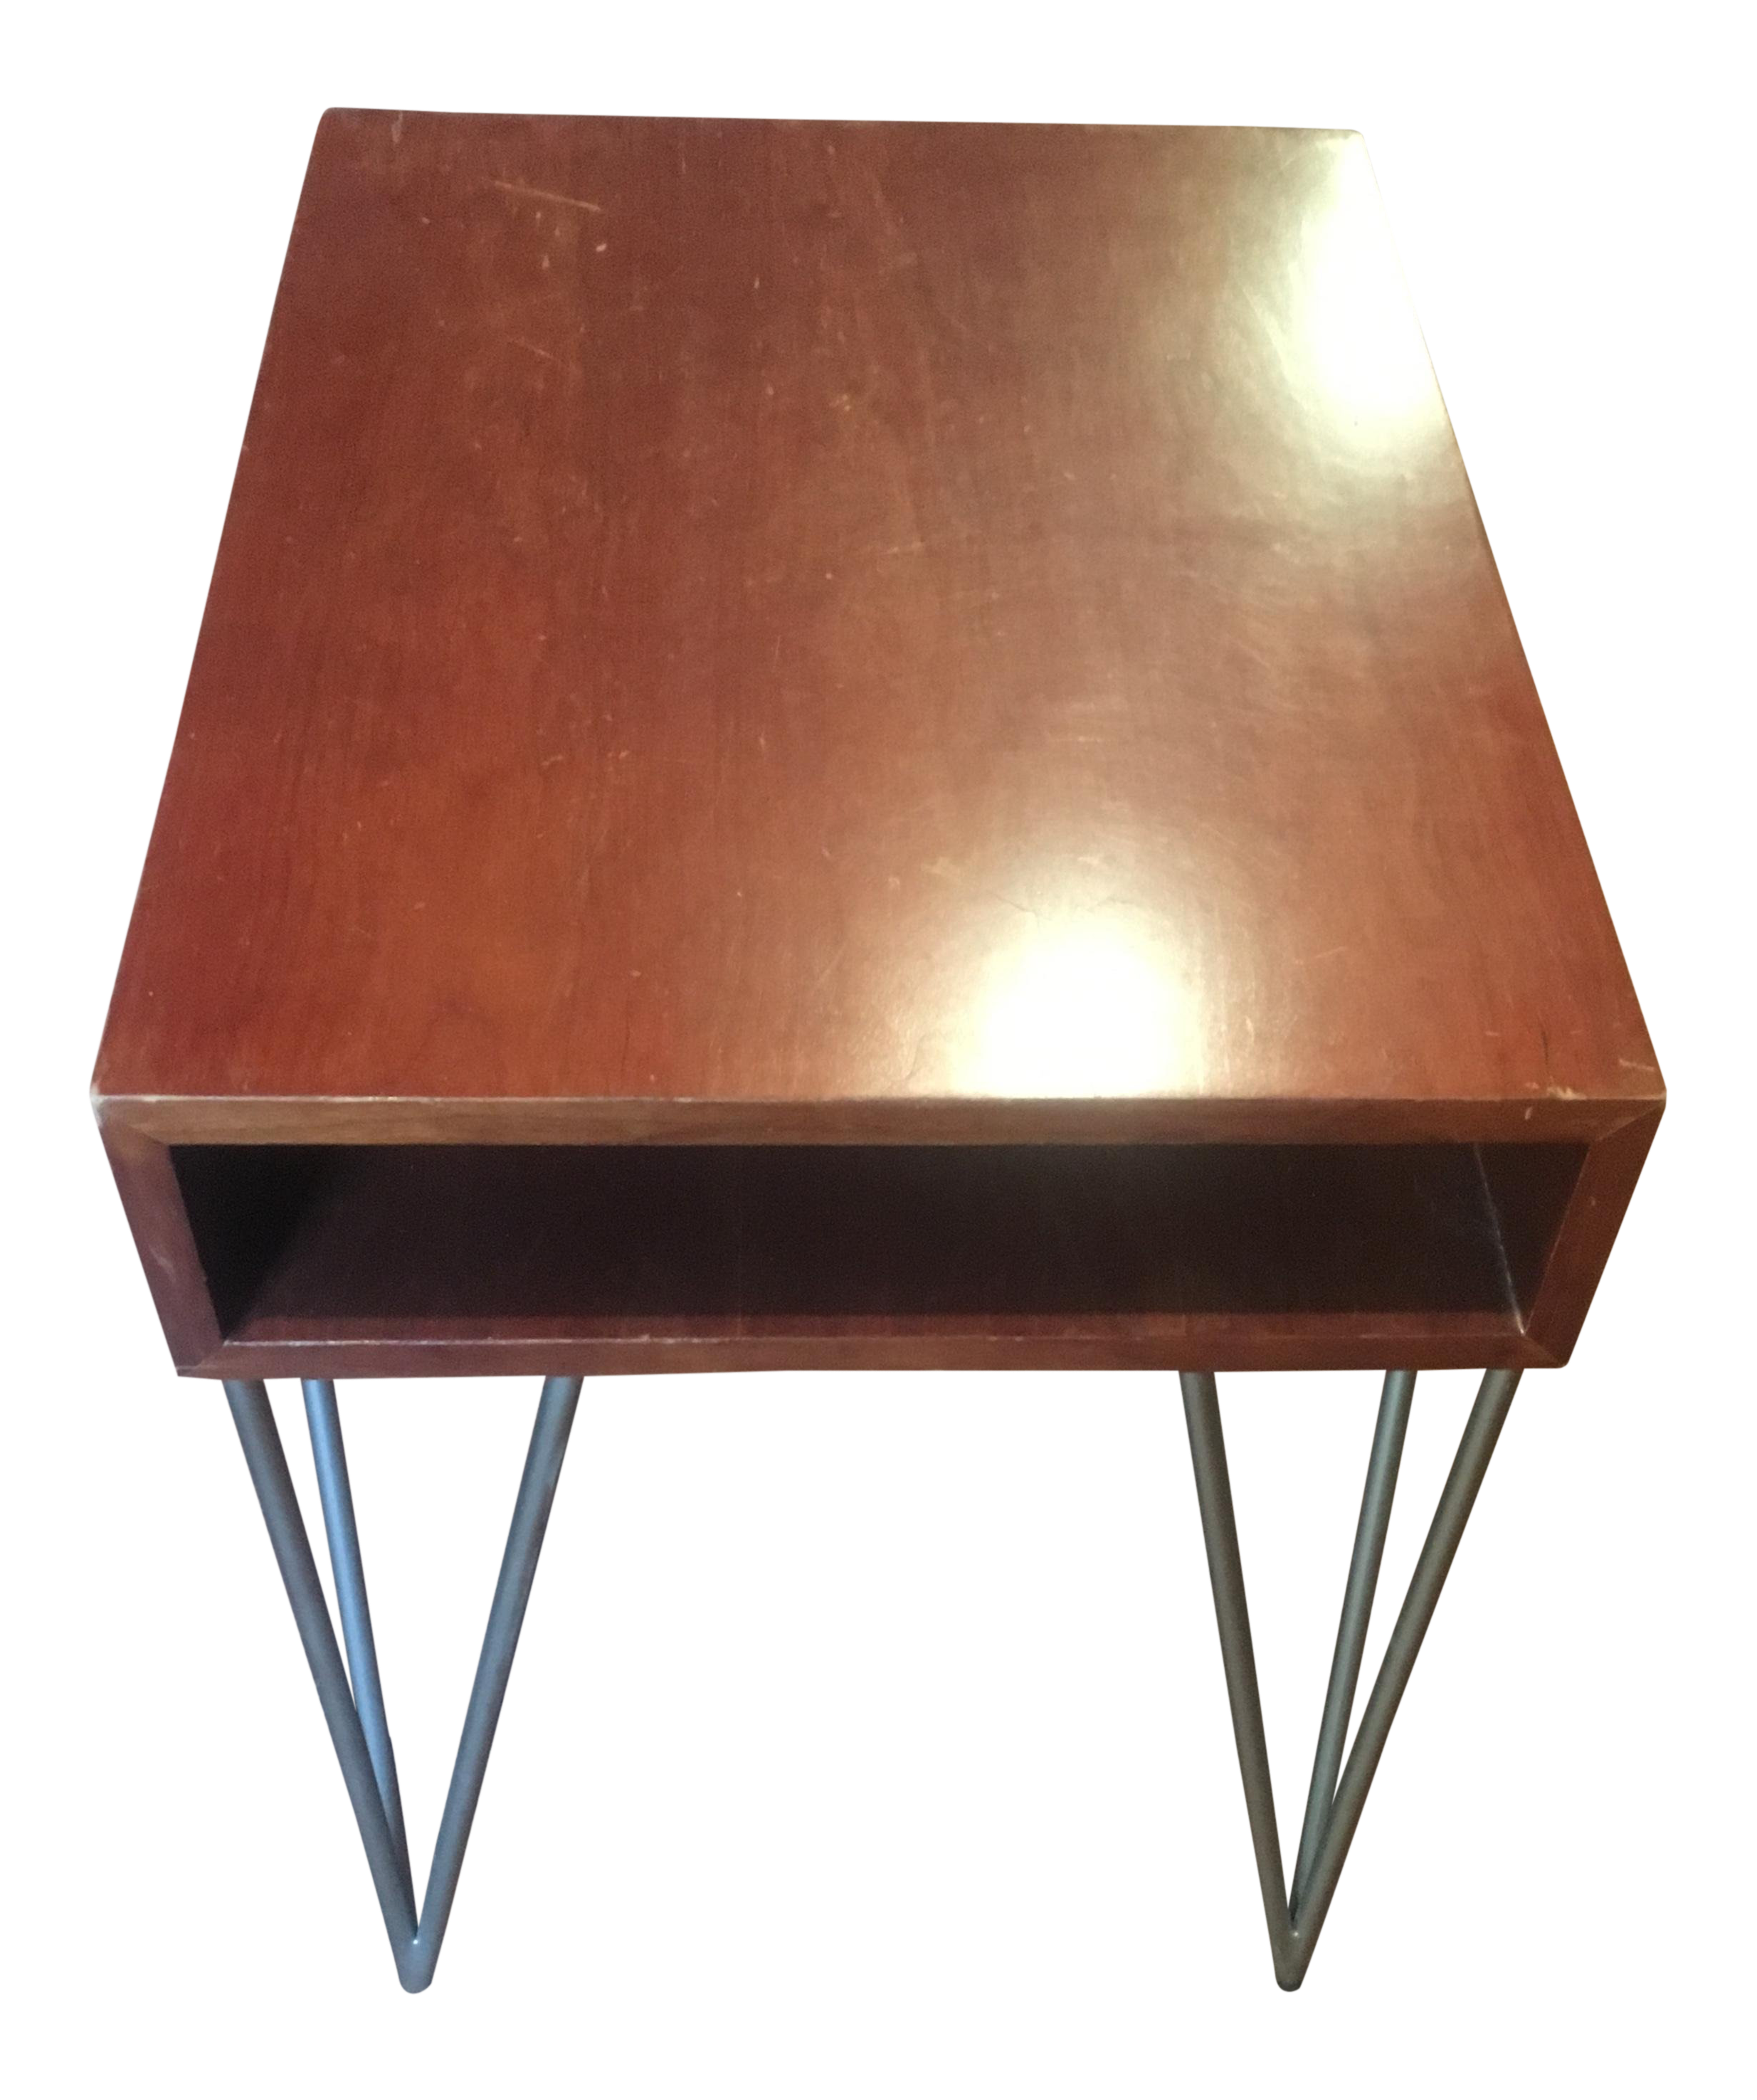 mid century modern todd oldham end table with hairpin legs chairish leg accent bourse foldable coffee led night light large concrete dining distressed console industrial look